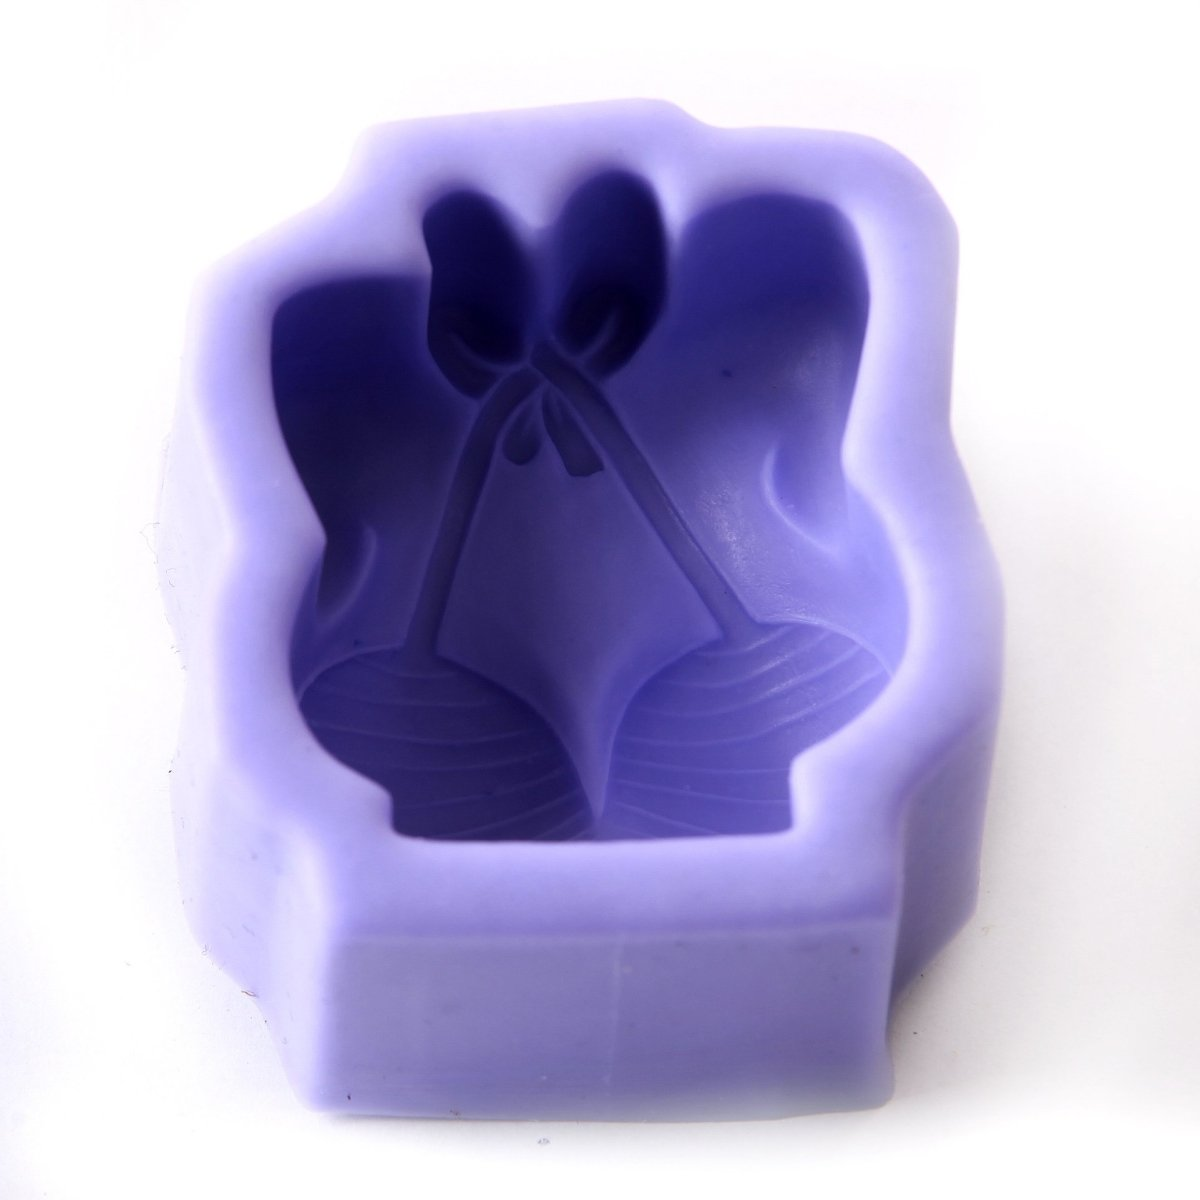 Bikini Top Silicone Soap Mould R0955 - Mystic Moments UK